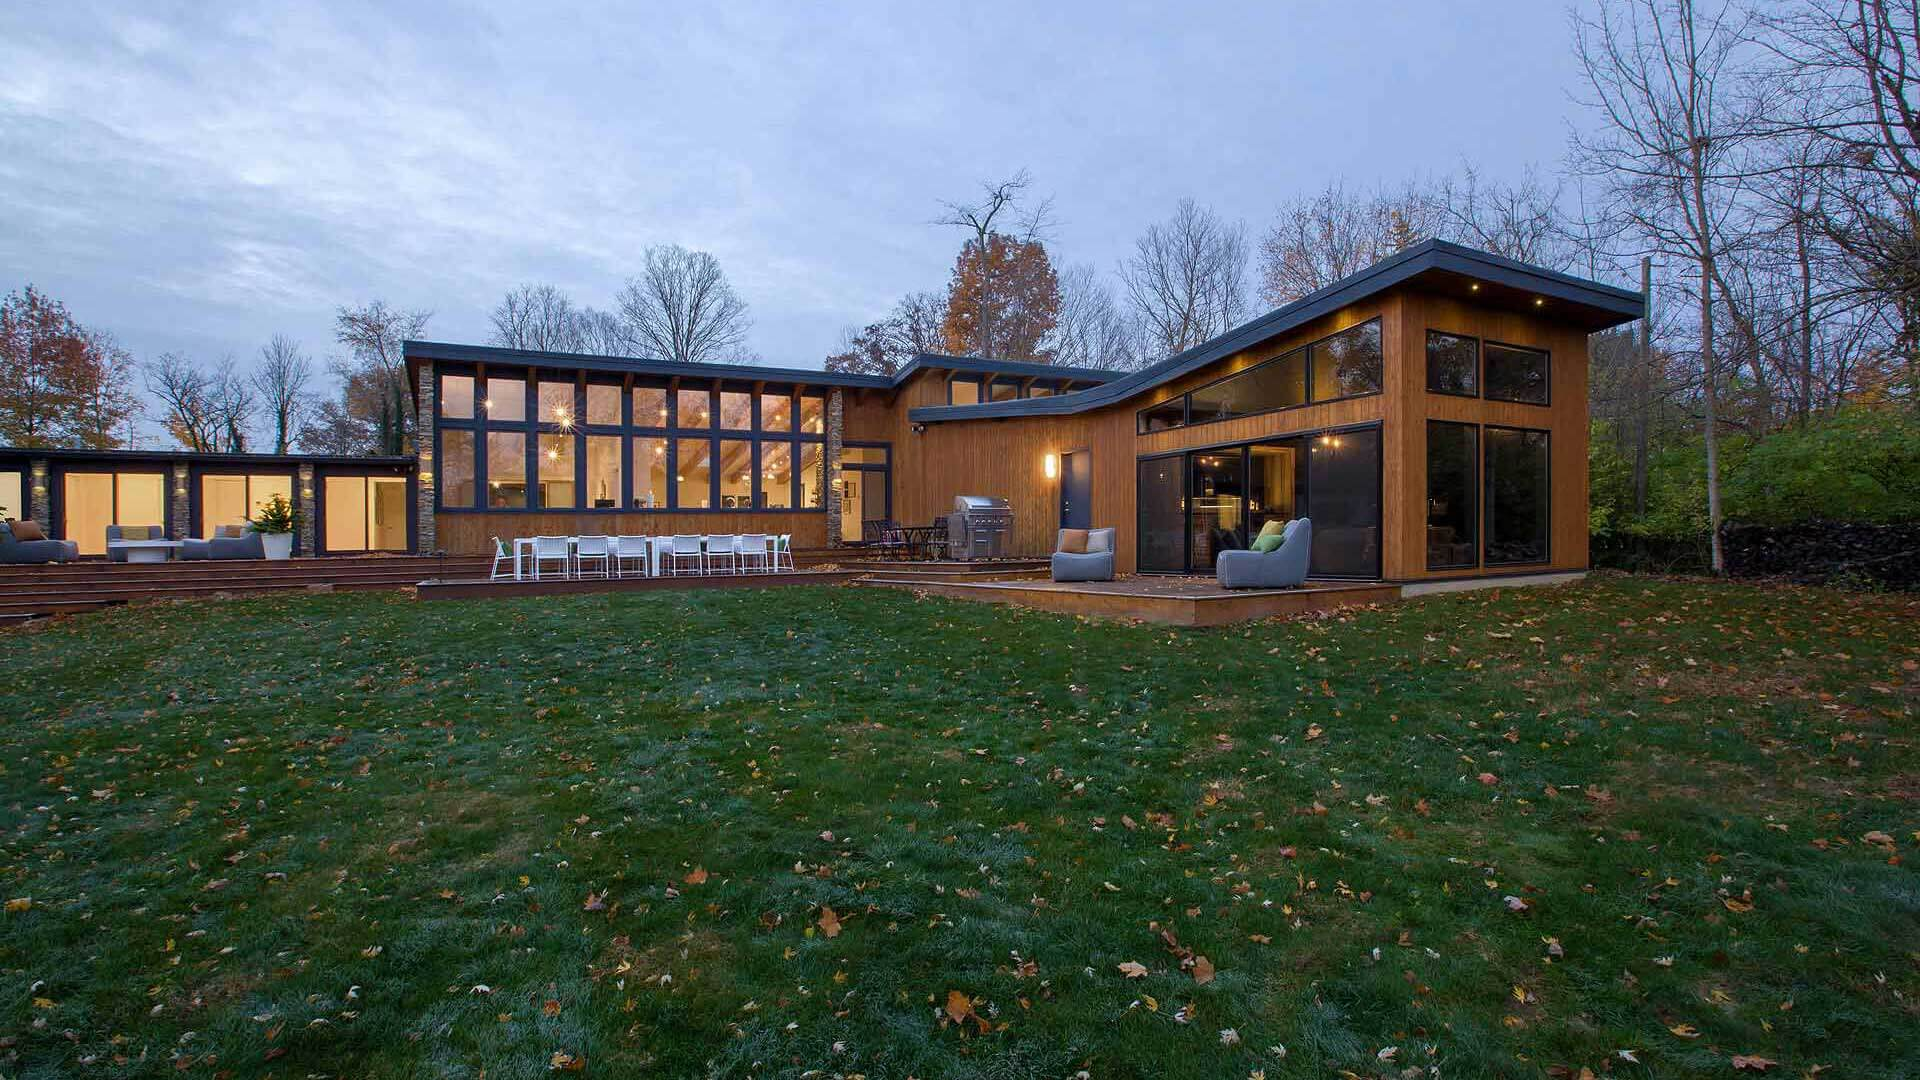 Rear Elevation Fall 2018 - Cigar Room - Midcentury Modern Addition - Brendonwood, Indianapolis - HAUS | Architecture For Modern Lifestyles, Christopher Short, Architect - WERK | Building Modern - Project Manager, Paul Reynolds